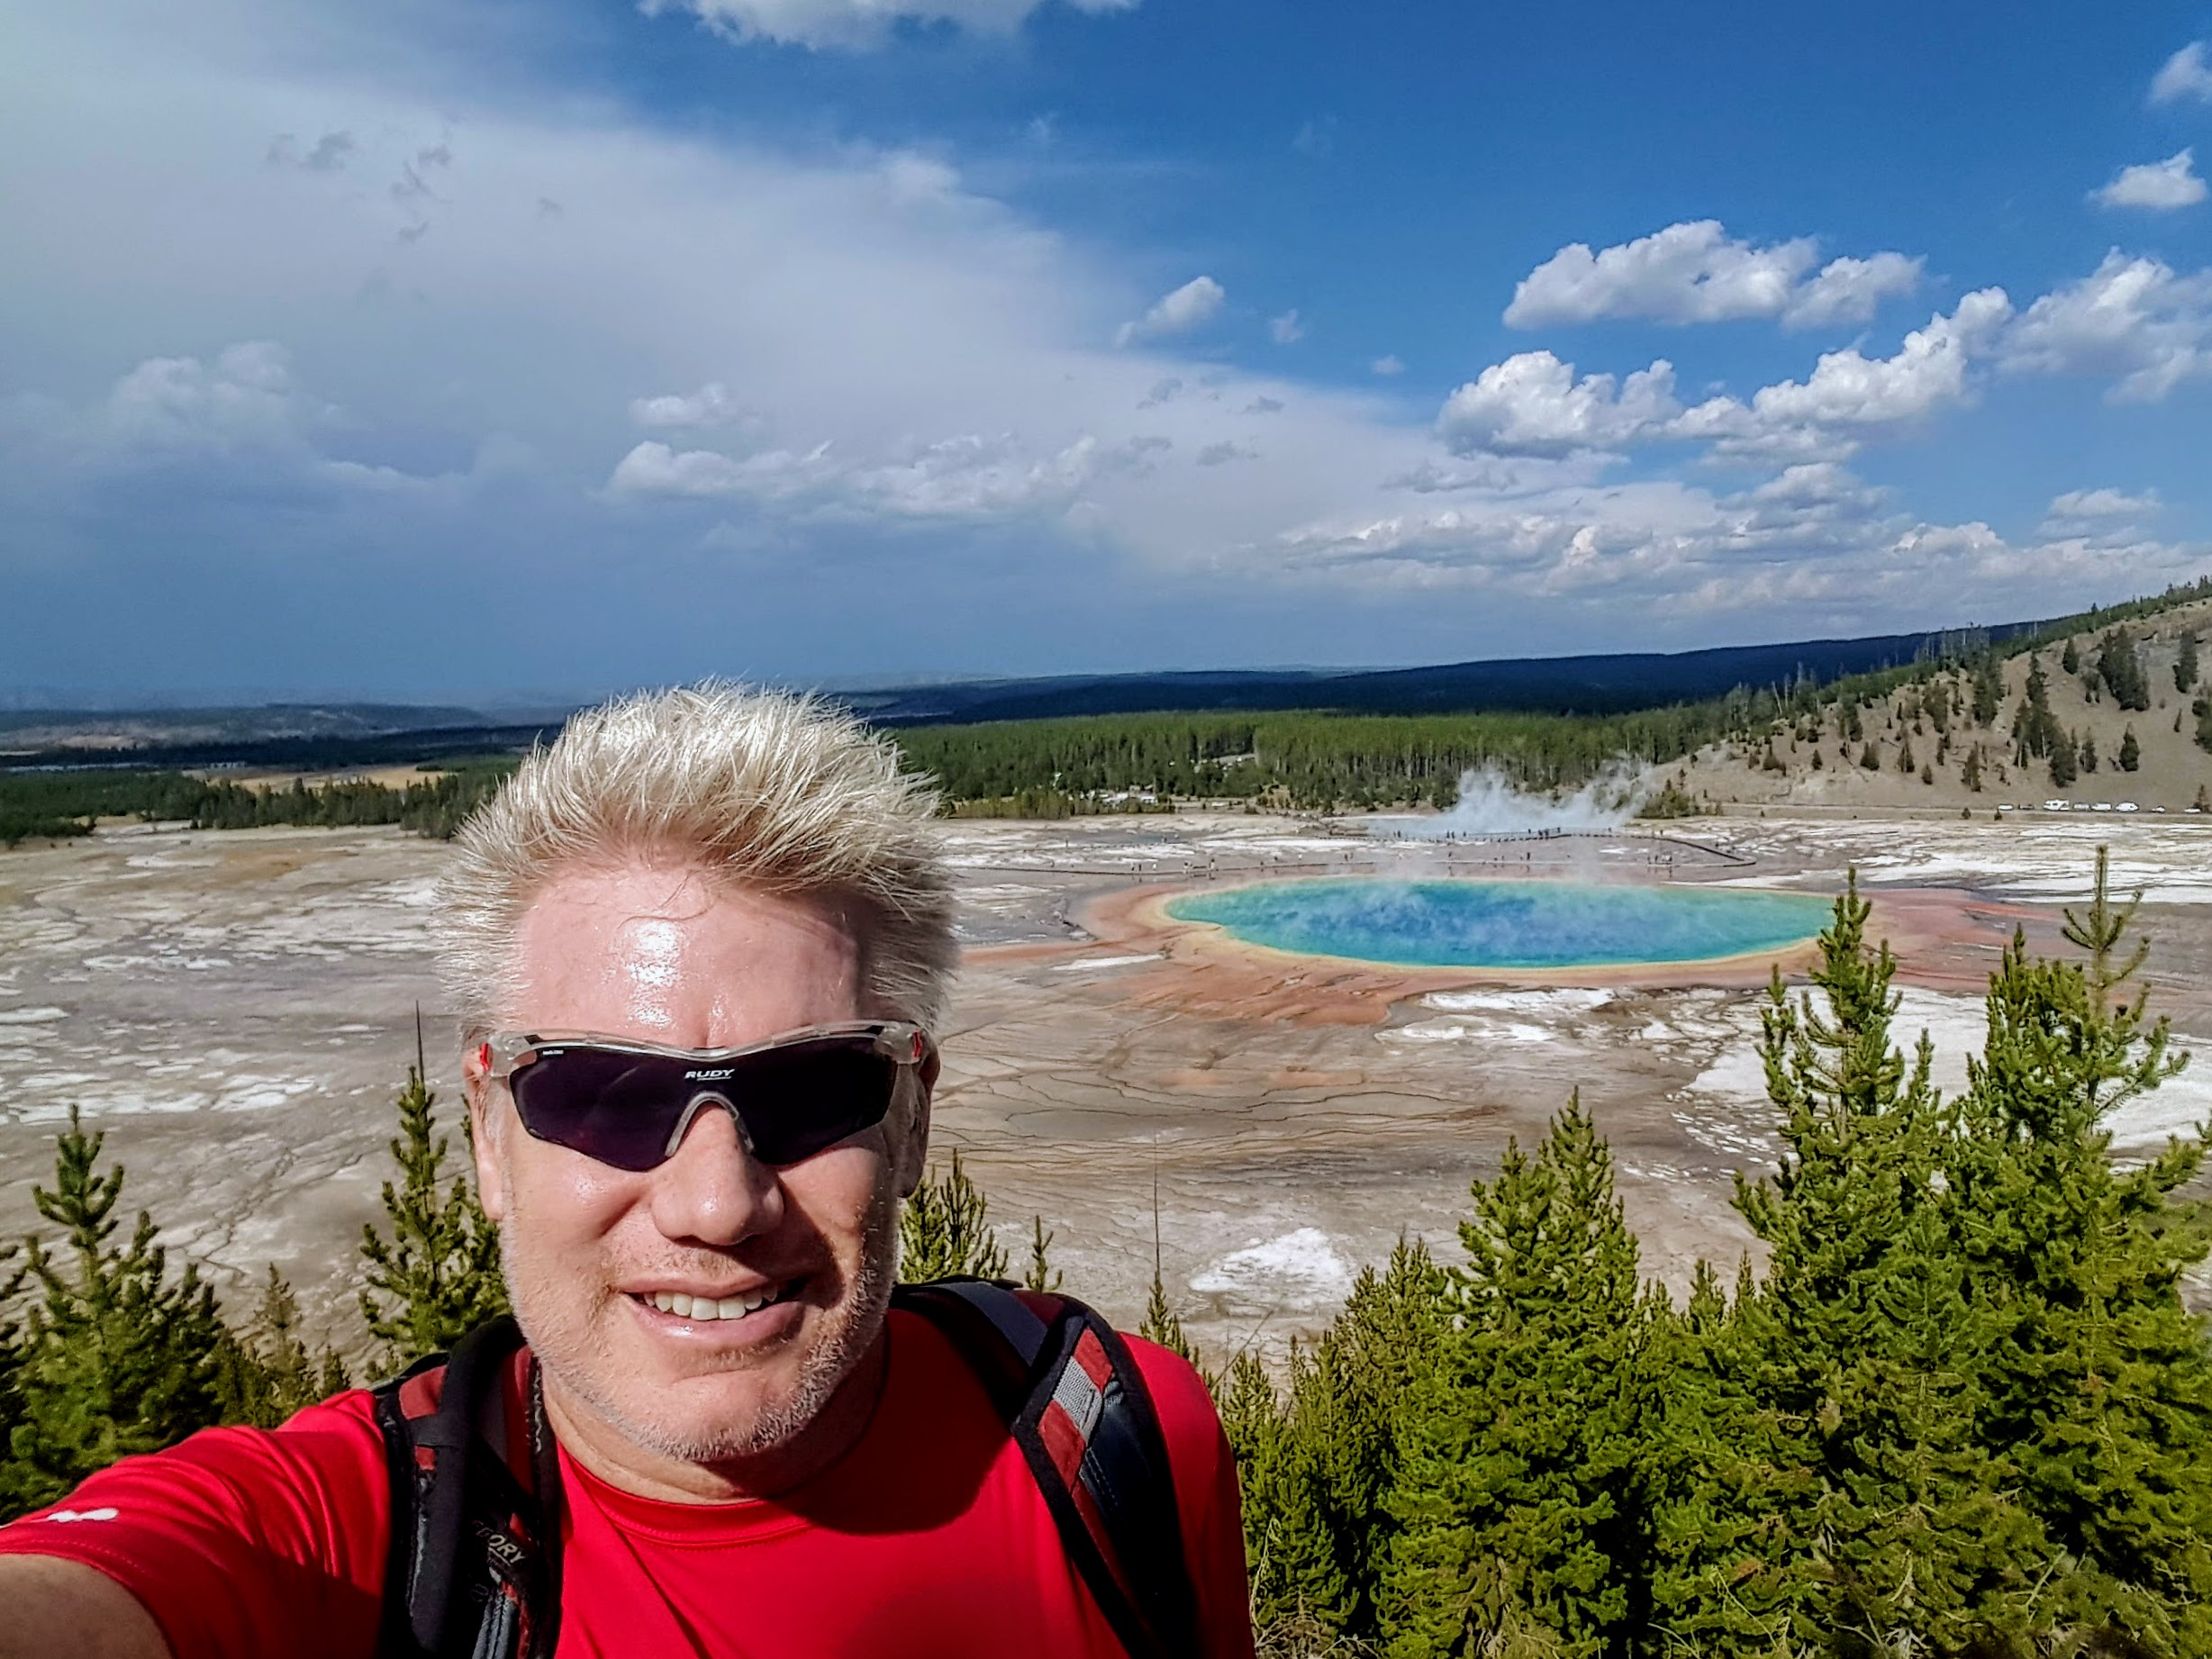 Christian at the Grand Prismatic Spring in Yellowstone National Park